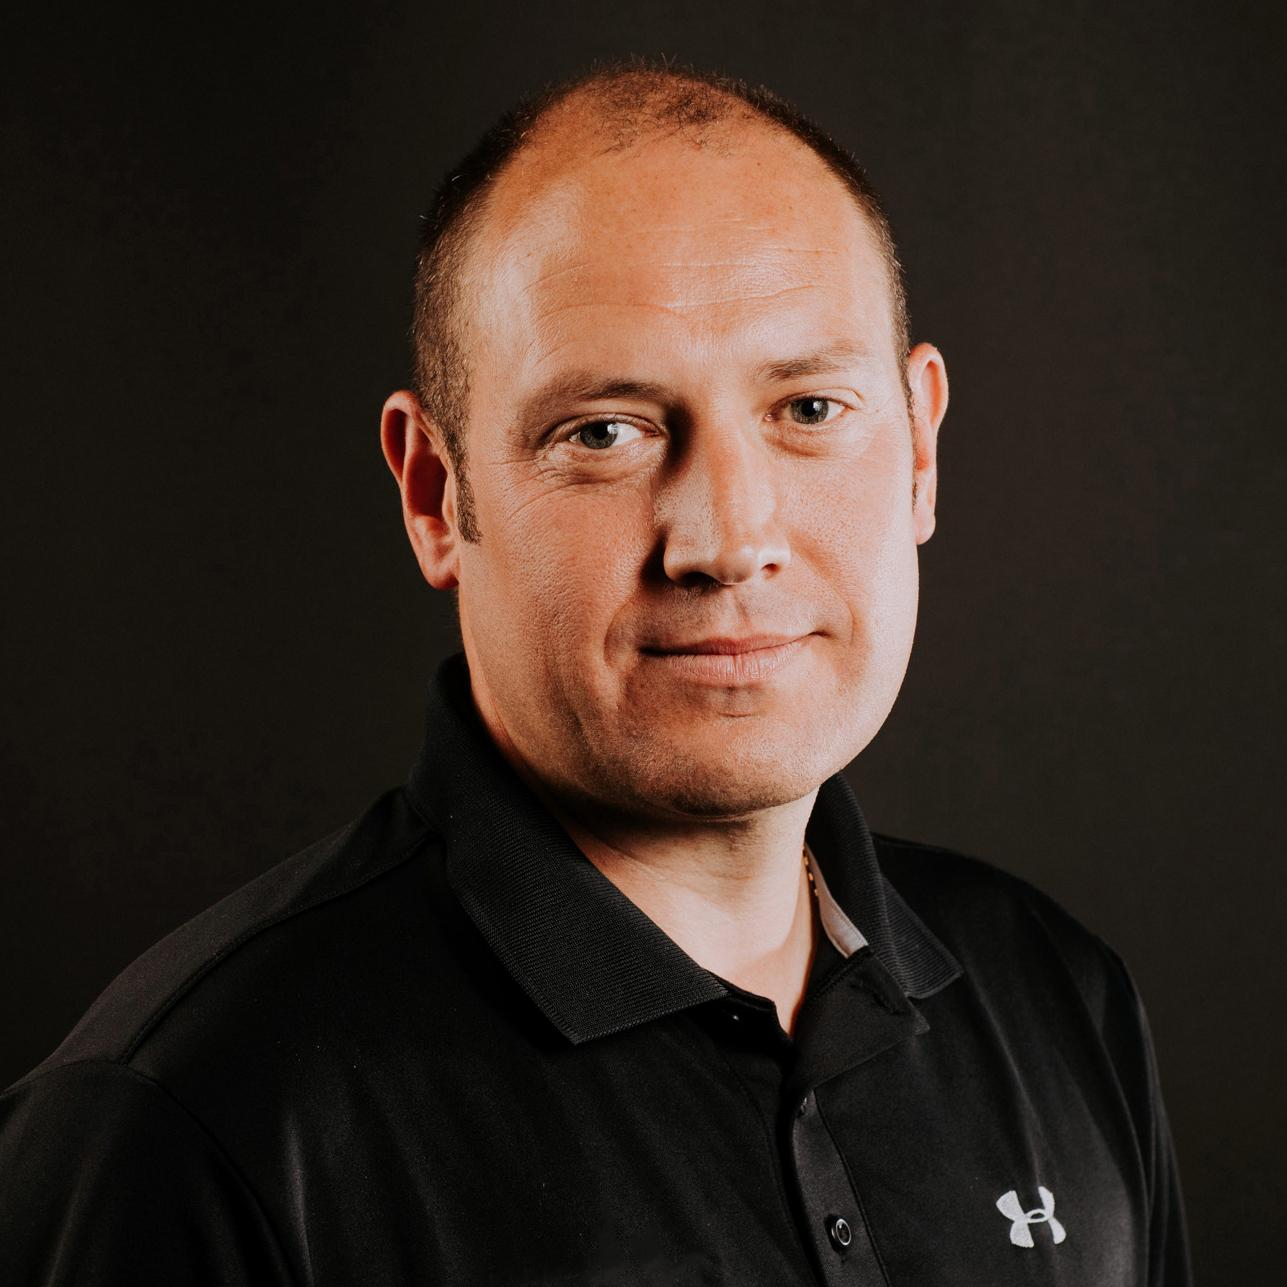 Julian Taylor most recently worked for Performance Health Systems